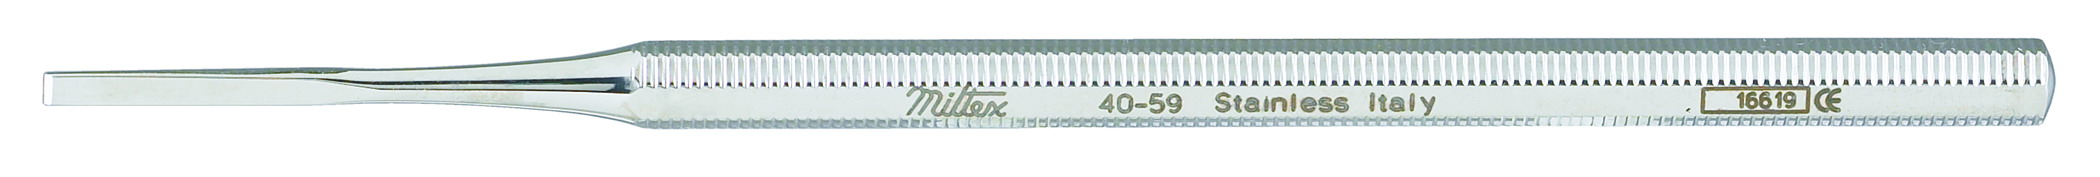 nail-splitters-straight-2-mm-wide-40-59-miltex.jpg